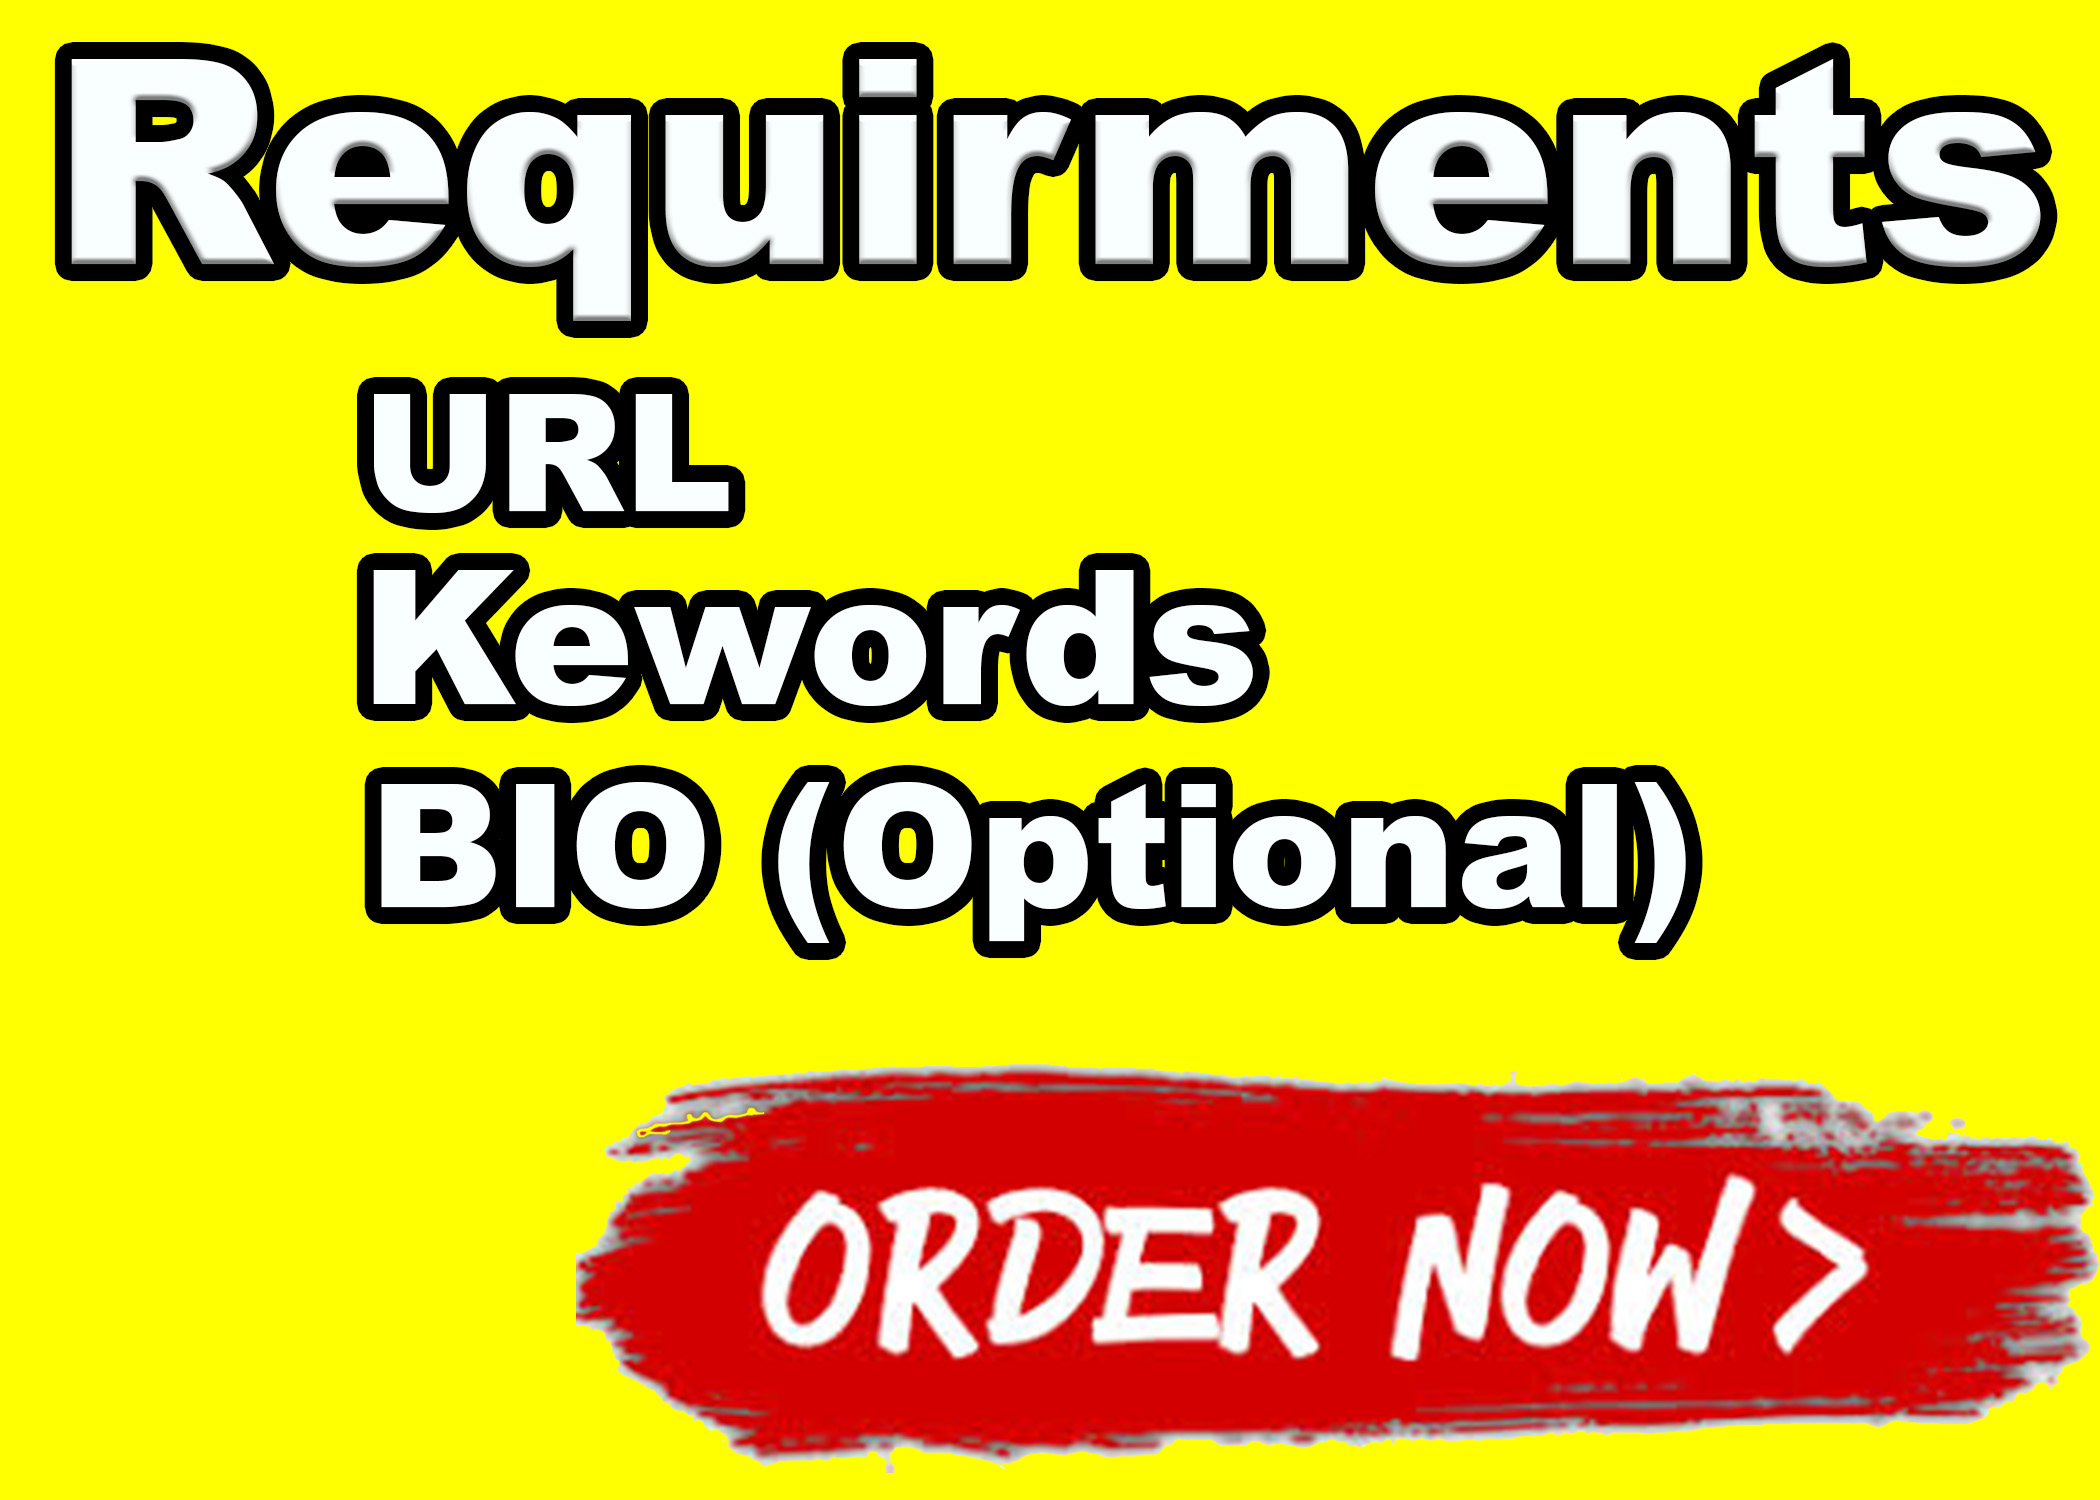 45 SEO With Manual High Authority Backlinks And Trust Links